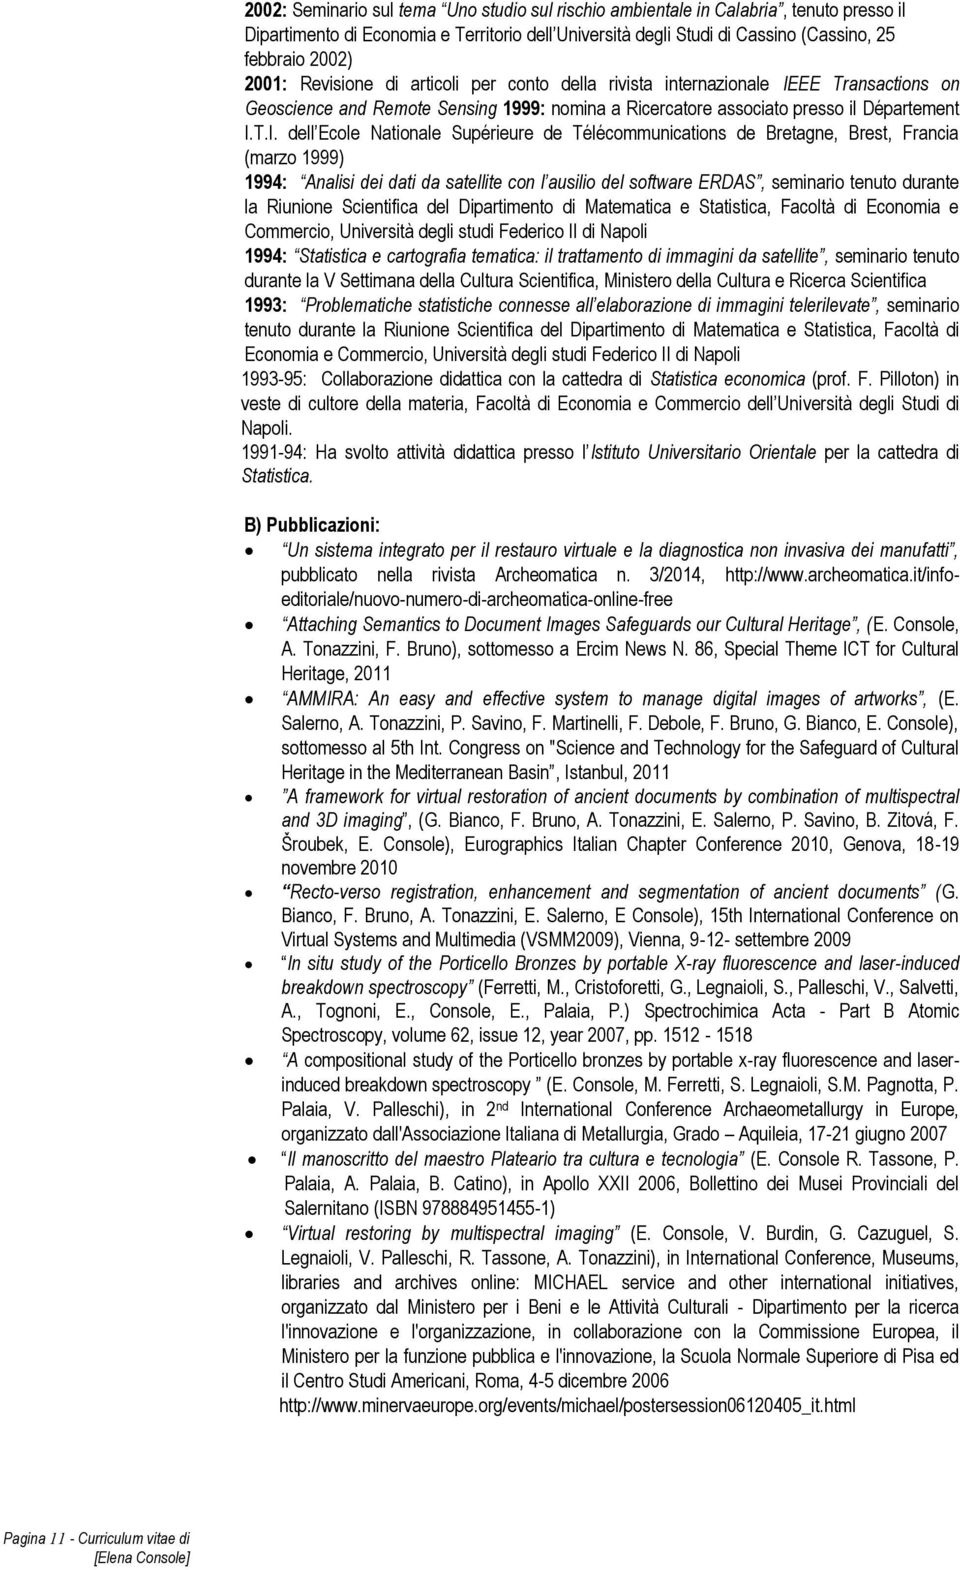 EE Transactions on Geoscience and Remote Sensing 1999: nomina a Ricercatore associato presso il Département I.